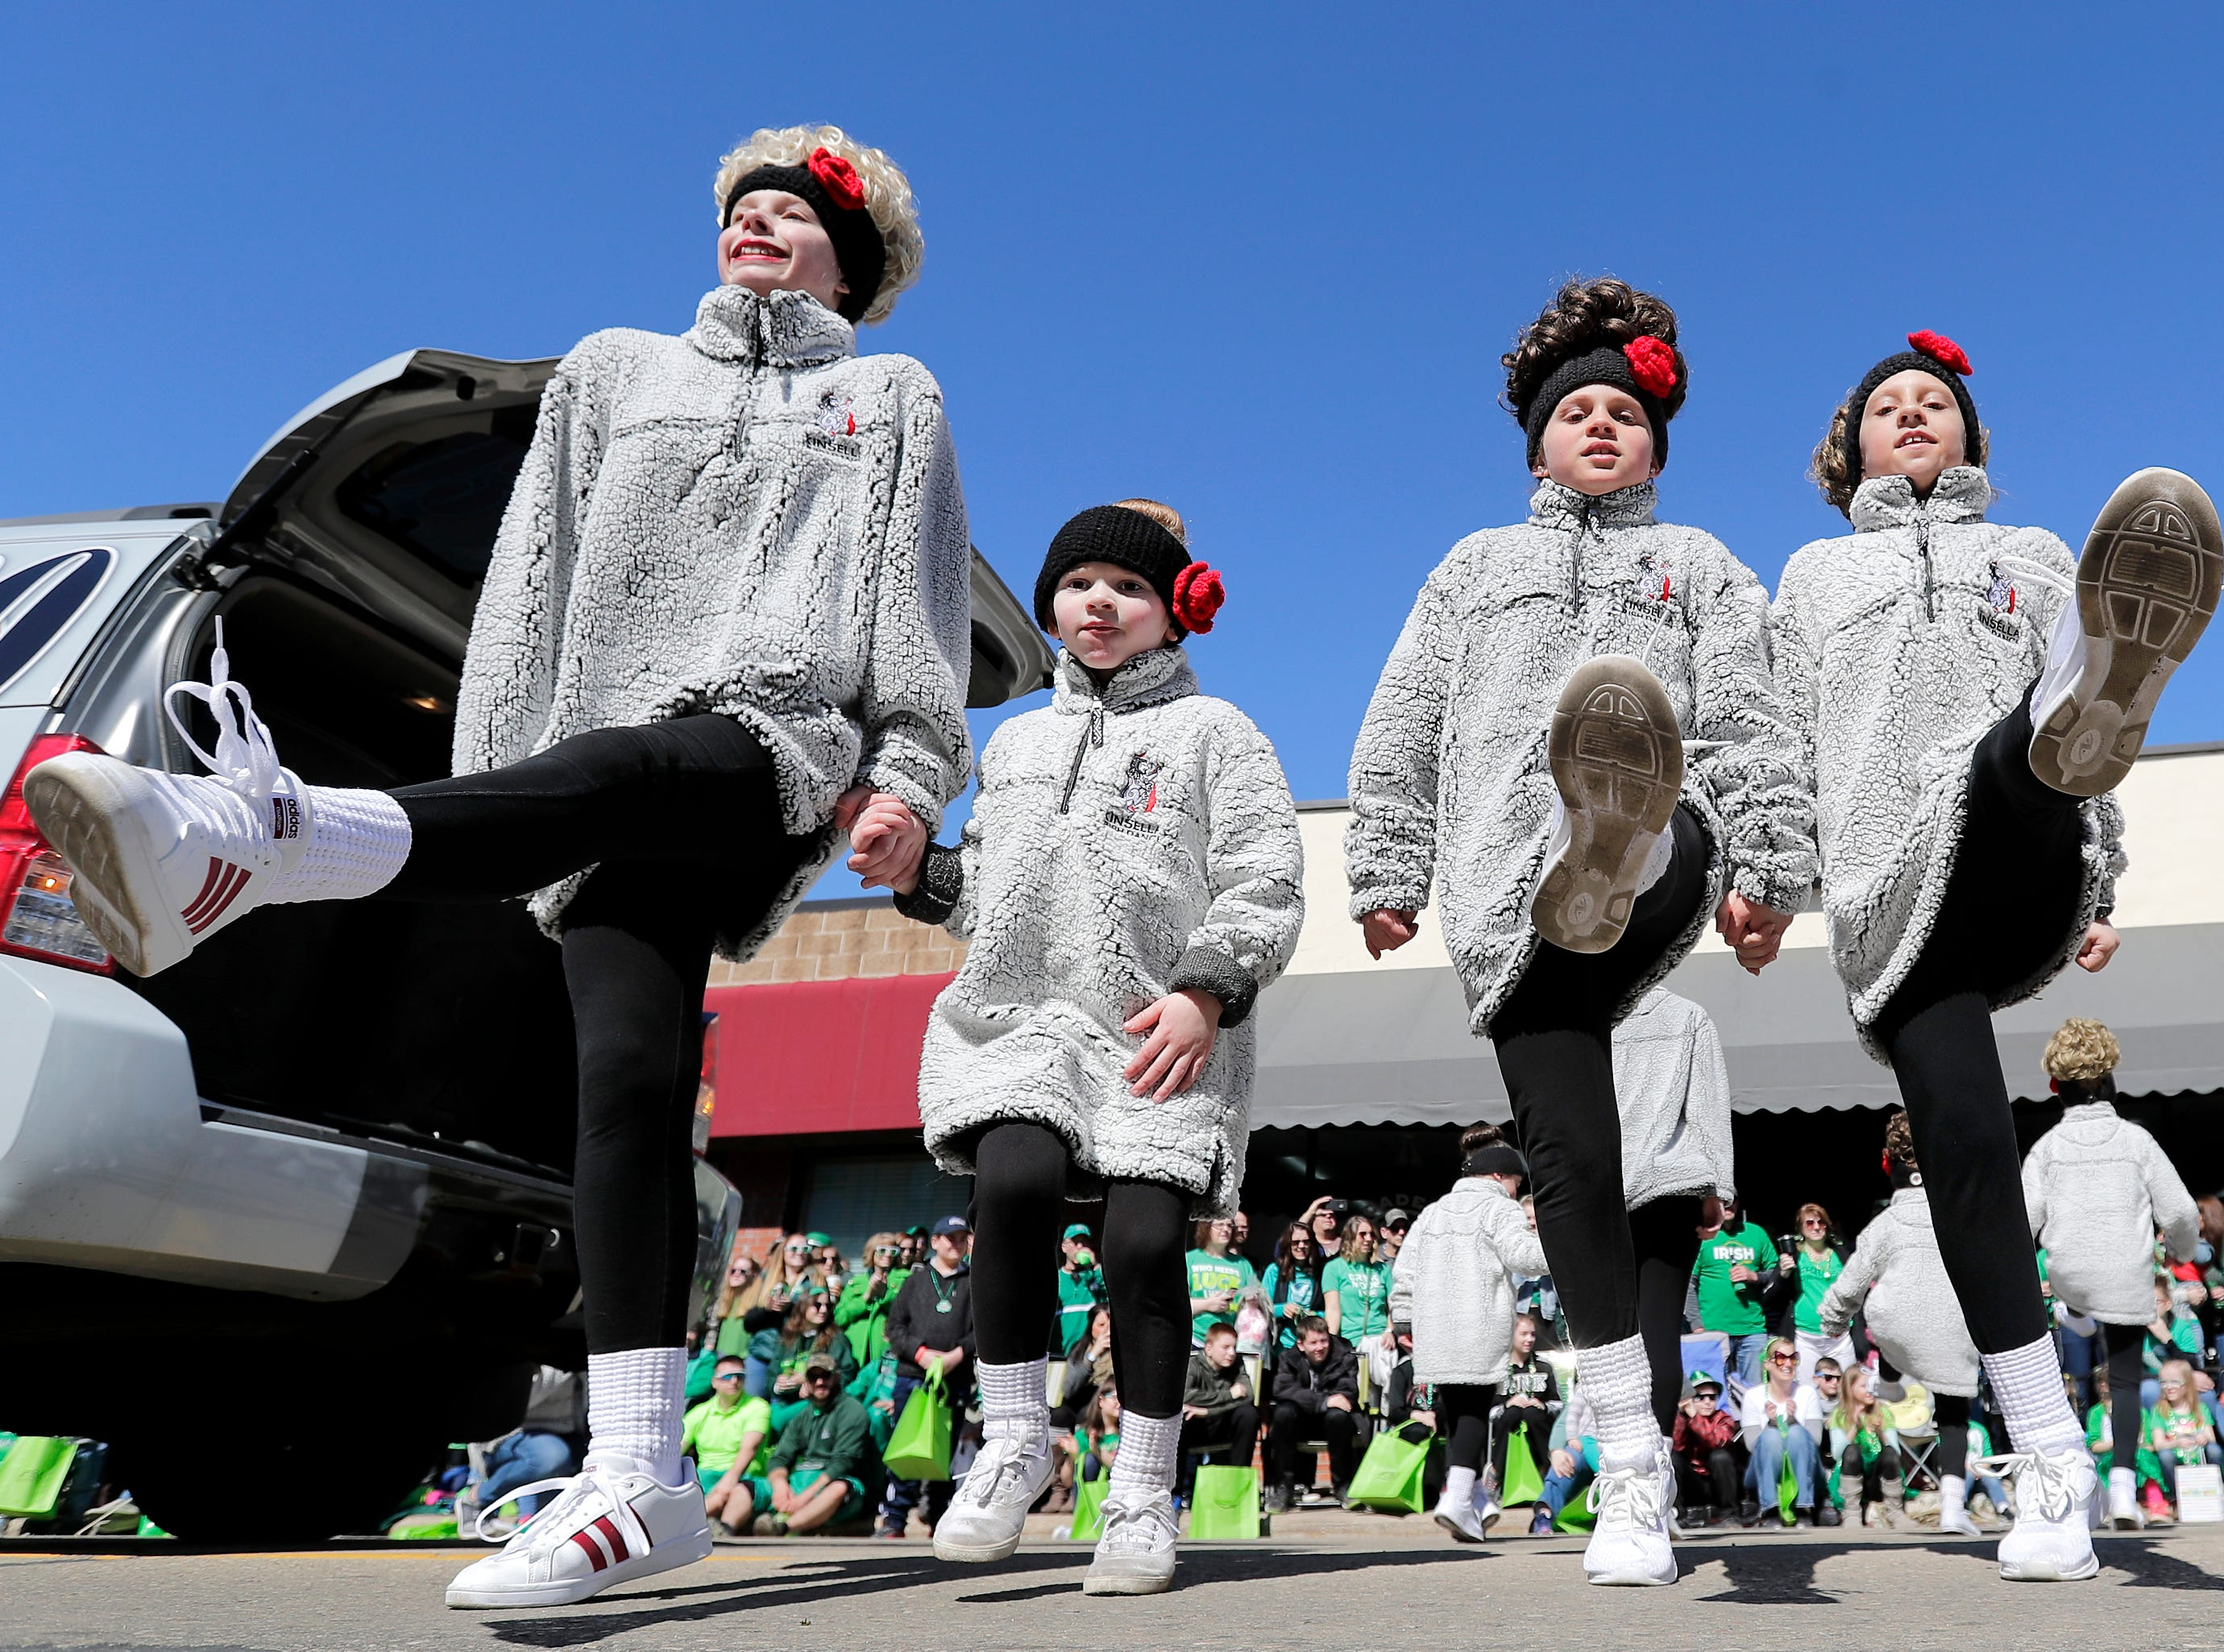 Members of Kinsella Irish Dance troupe perform during the New Dublin St. Patrick's Day Grand Parade on Saturday, March 23, 2019, in New London, Wis.Wm. Glasheen/USA TODAY NETWORK-Wisconsin.